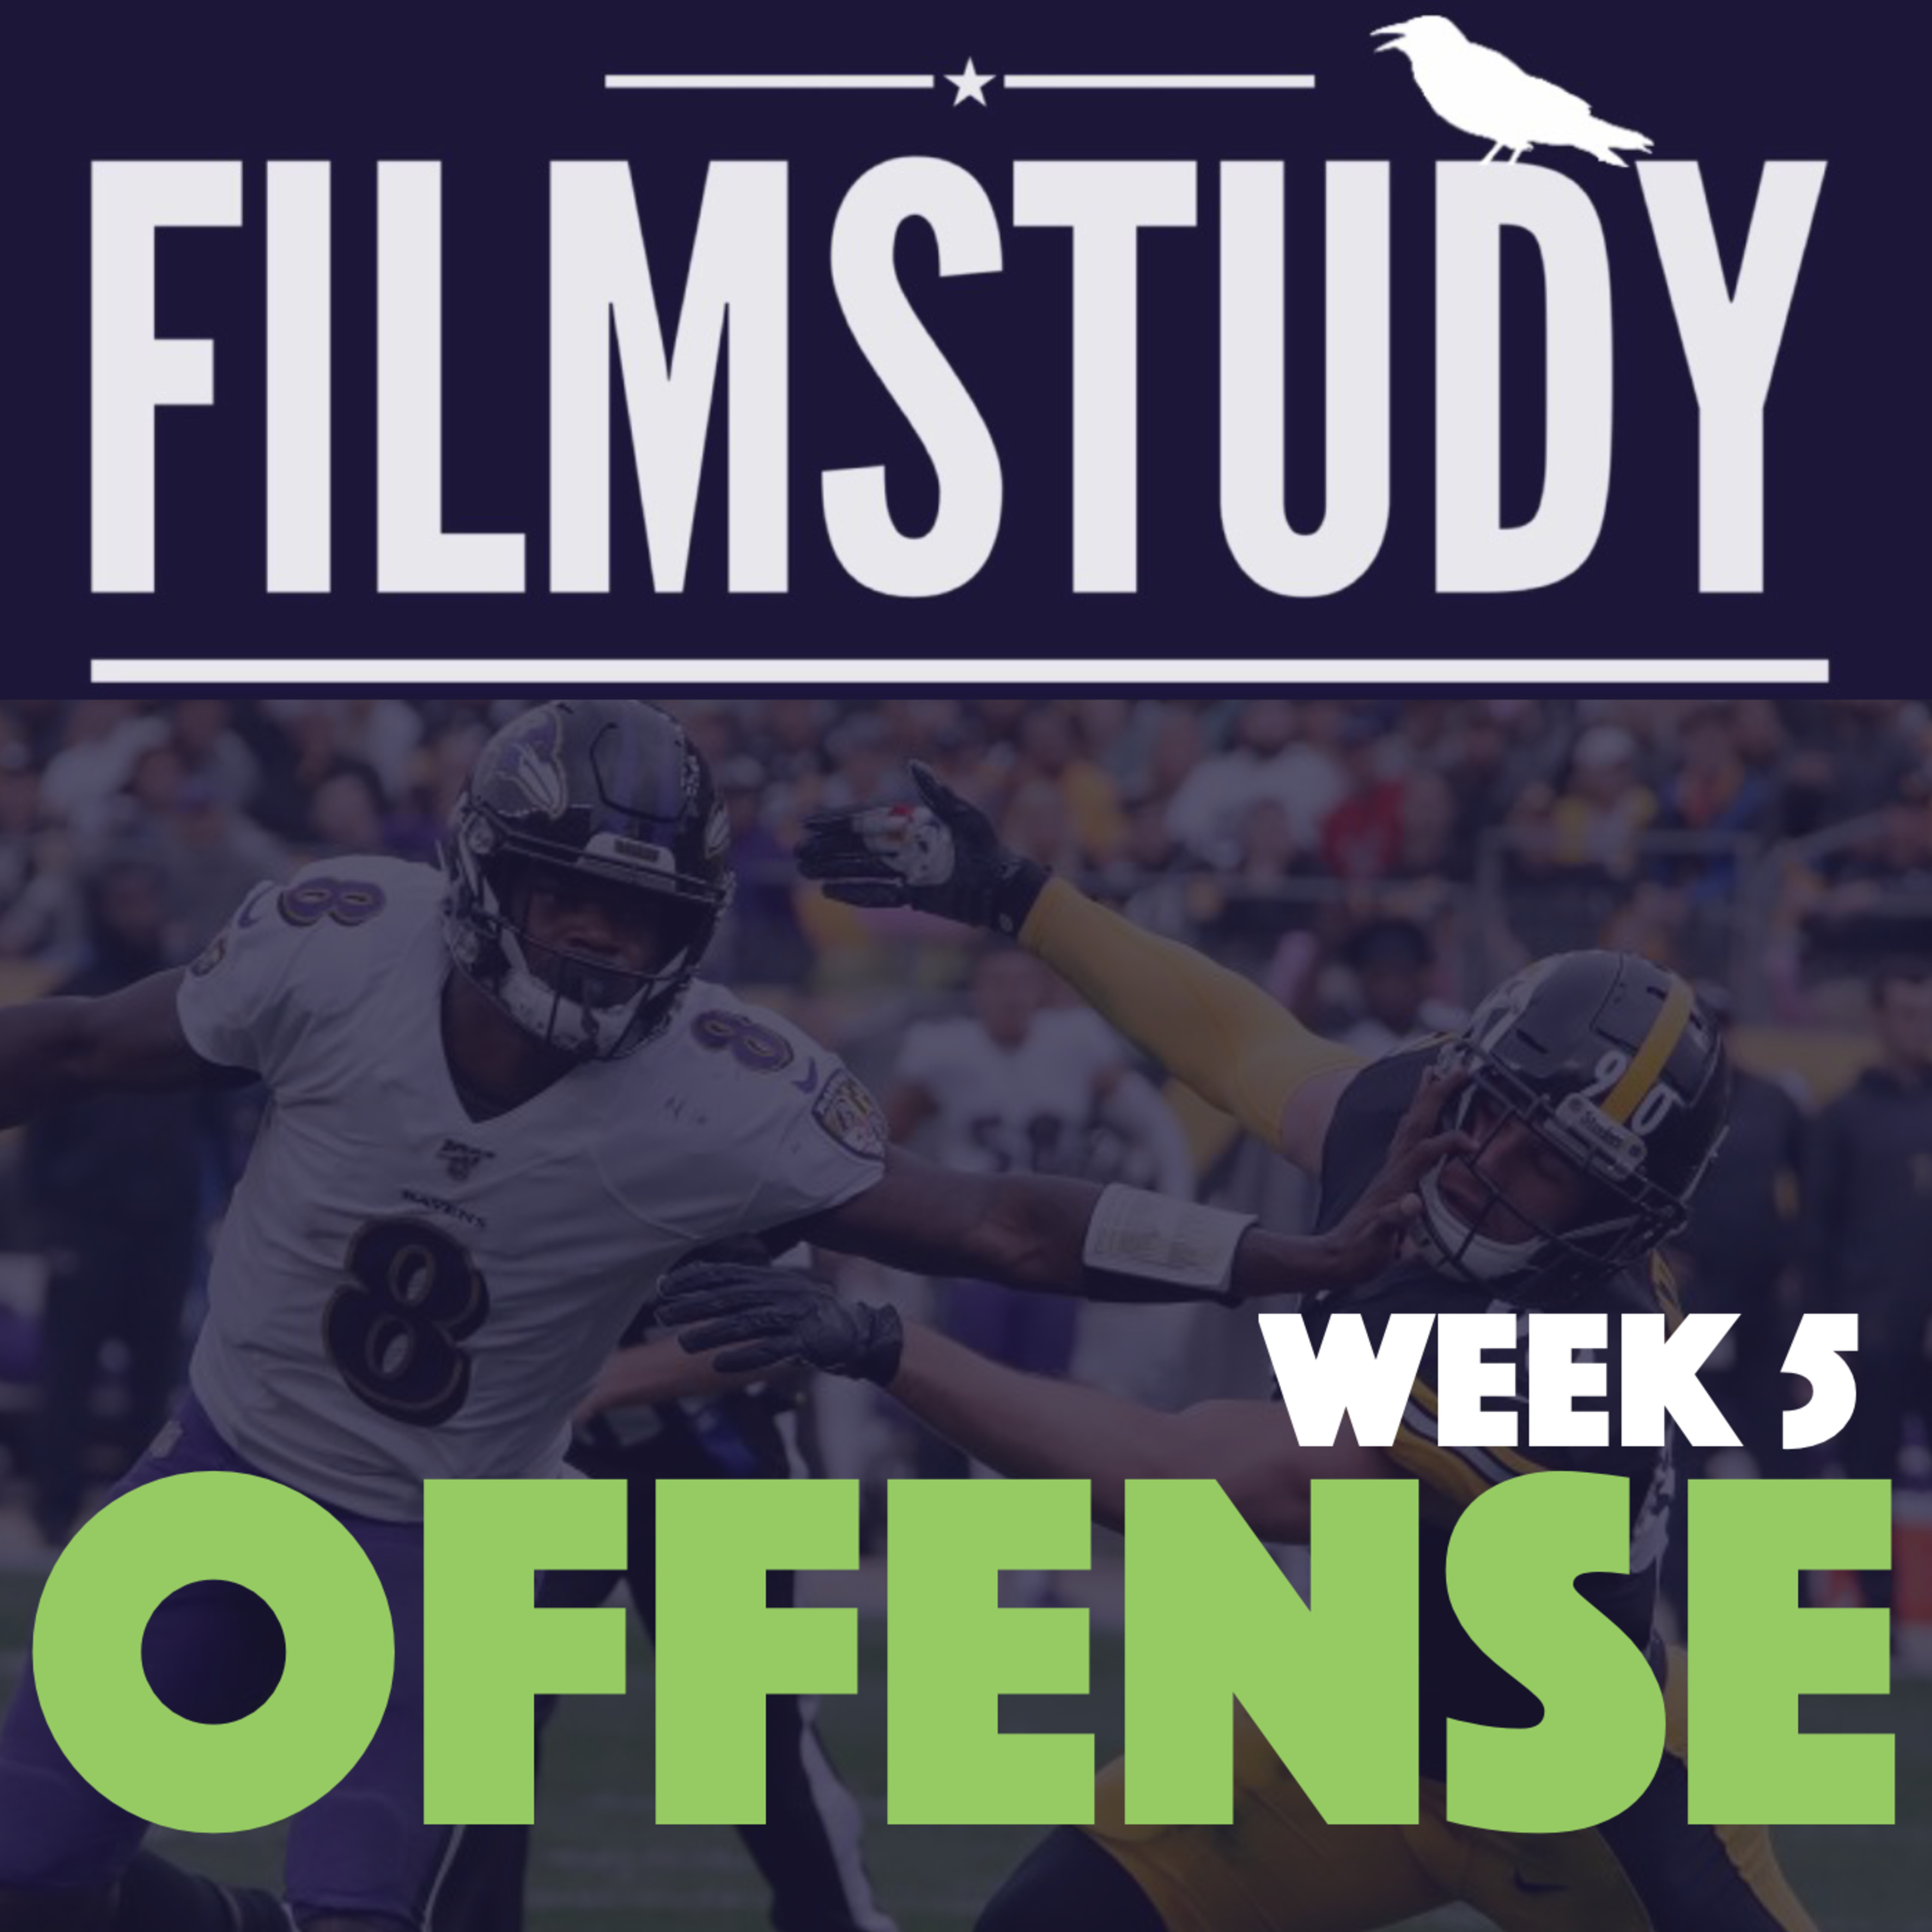 Offense Notes : Ravens @ Steelers Week 5